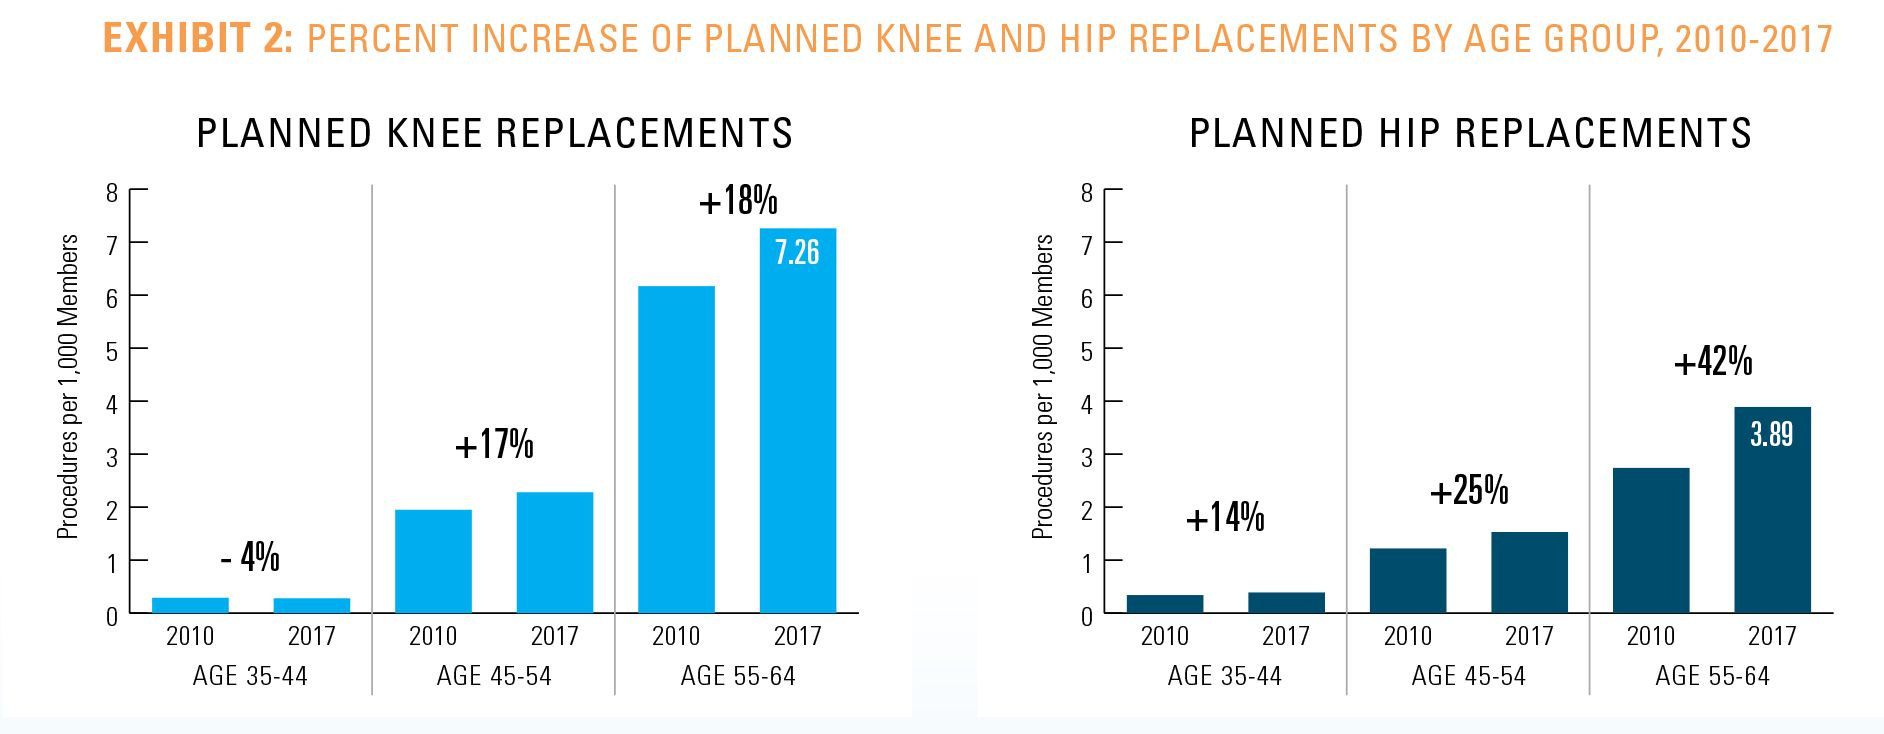 Planned knee and hip replacement surgeries are on the rise